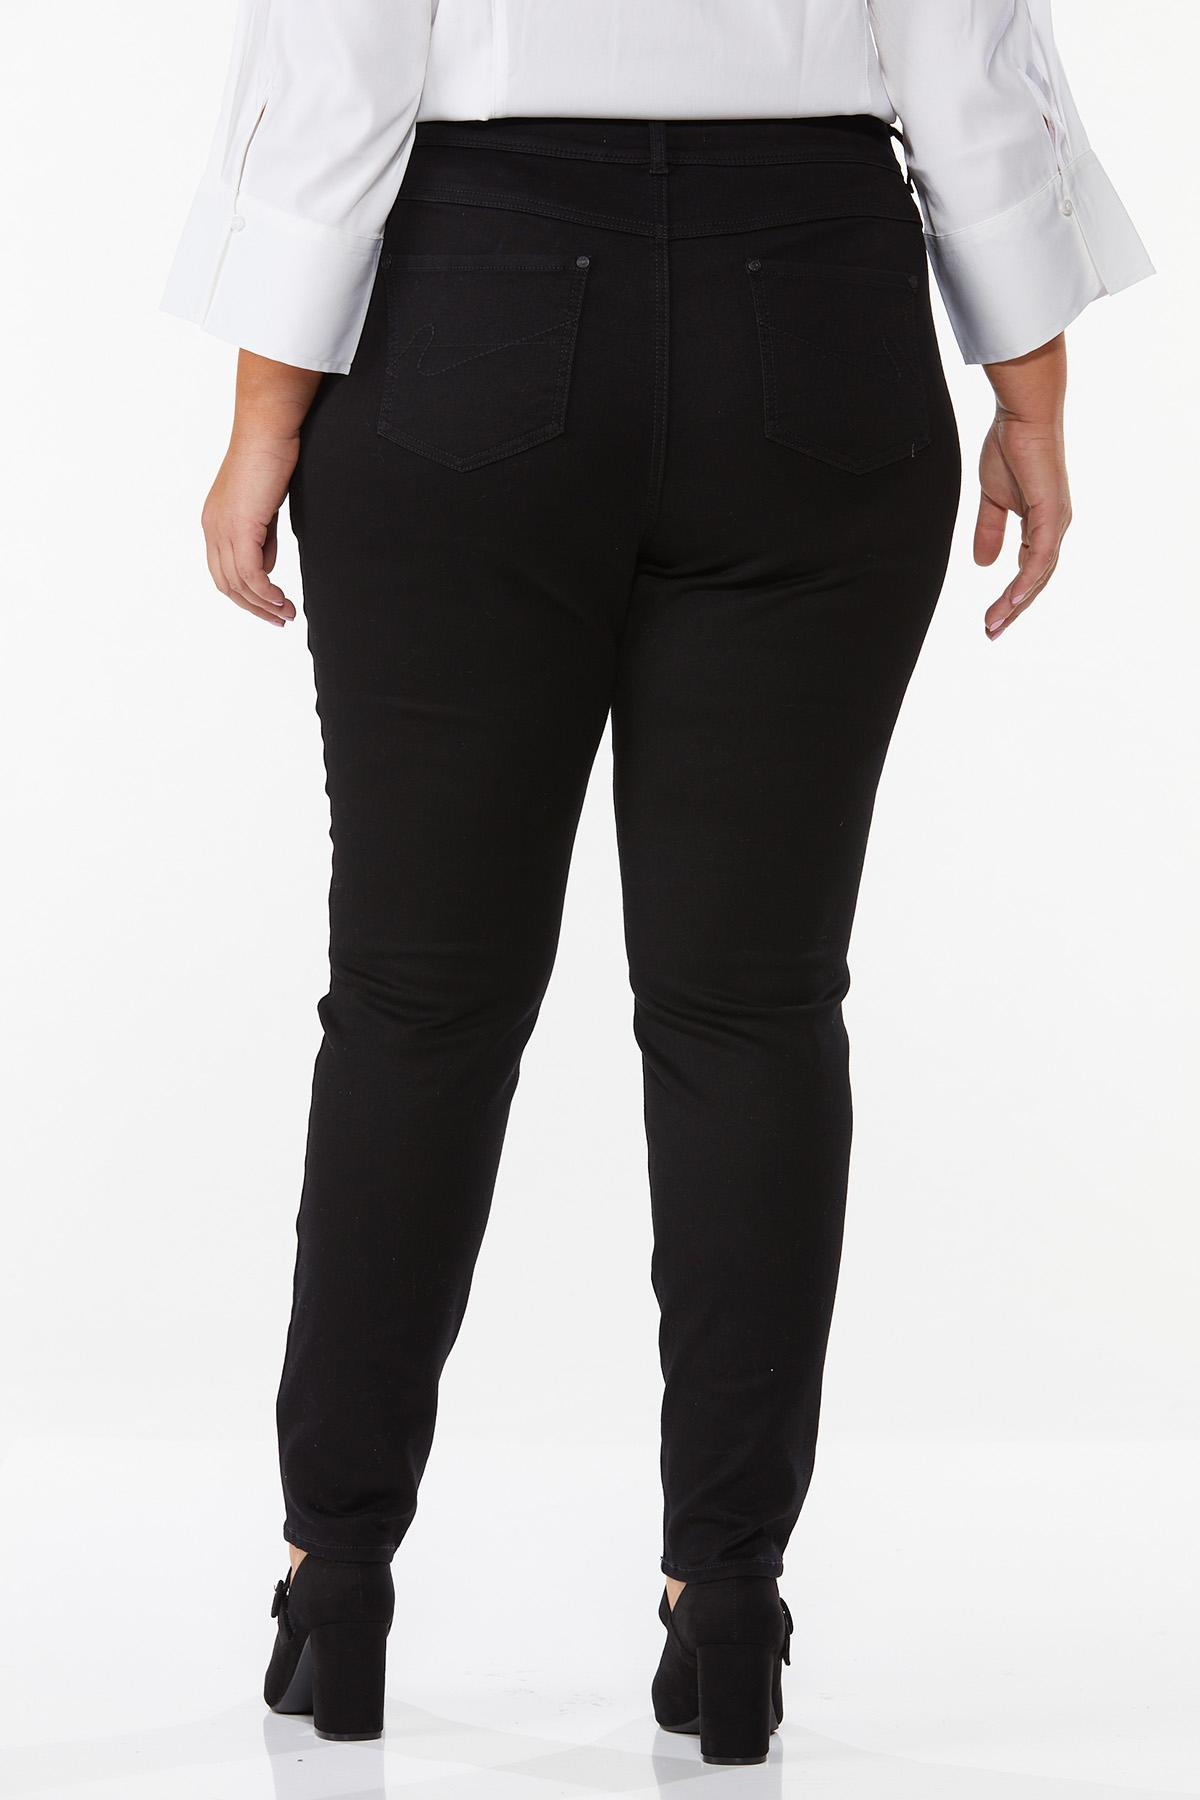 Plus Size Black Jeggings (Item #37461514)